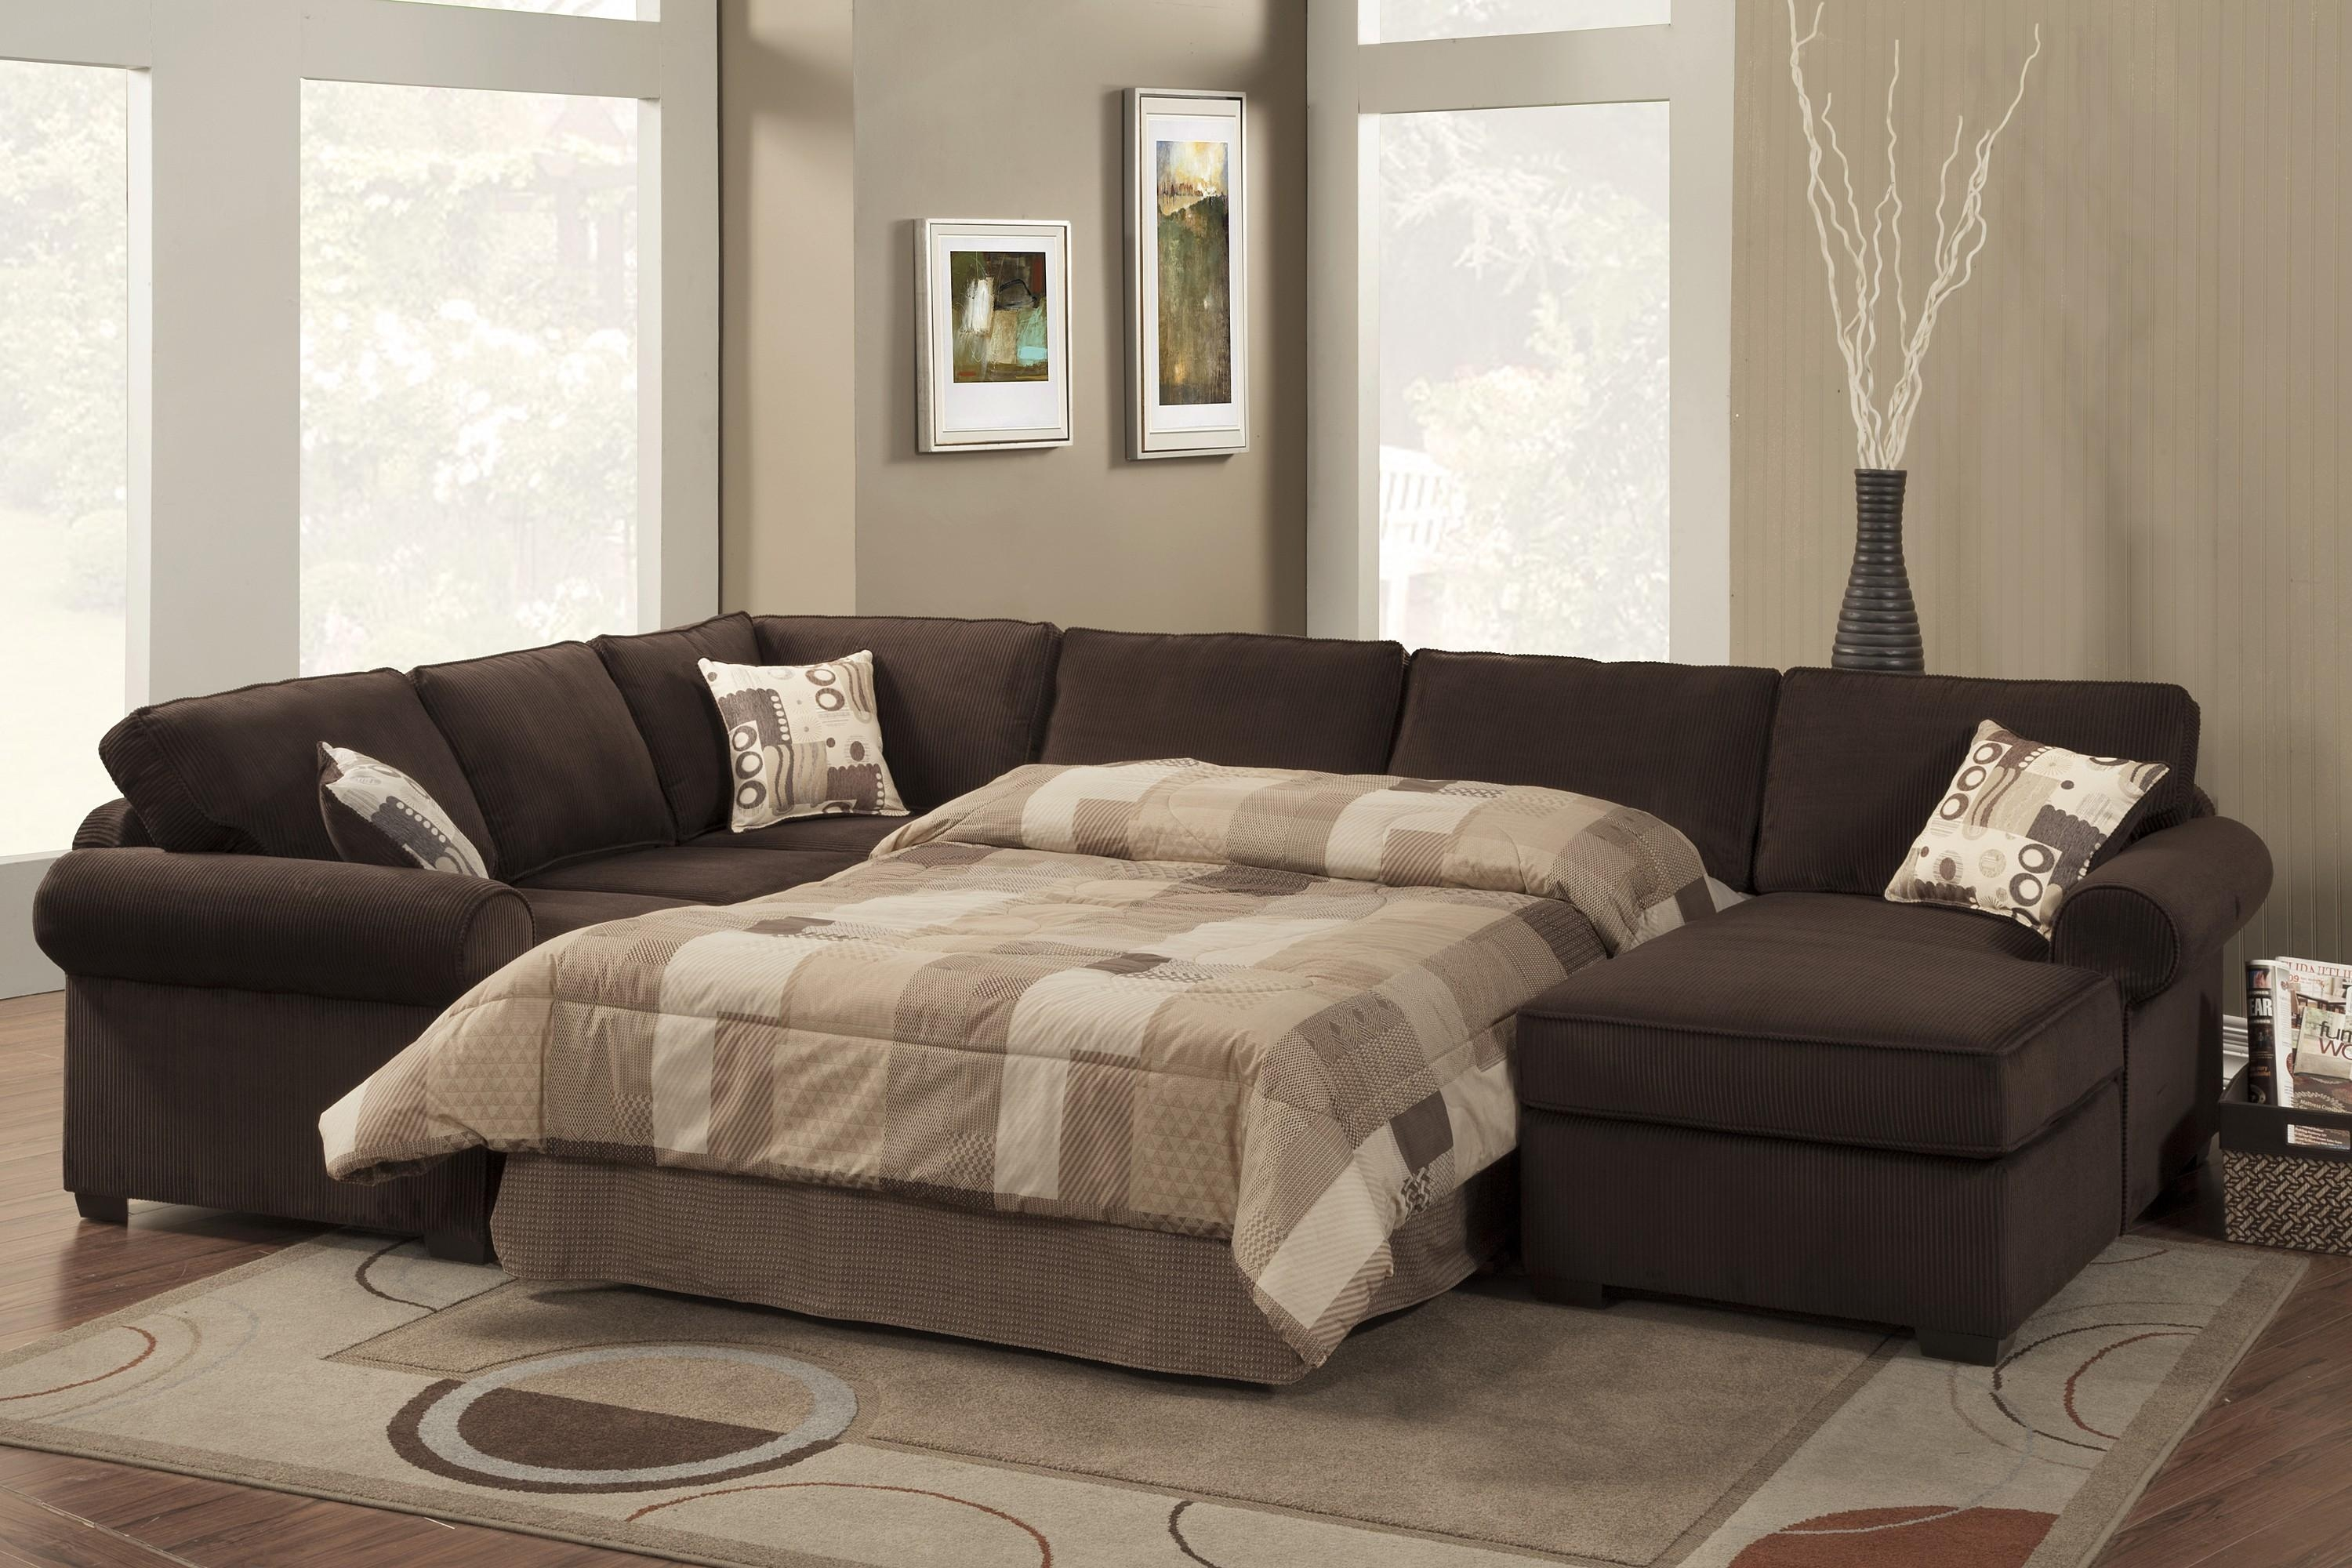 Apartment Sectional Sofa Bed | Tehranmix Decoration Throughout Apartment Sectional Sofa With Chaise (View 5 of 15)